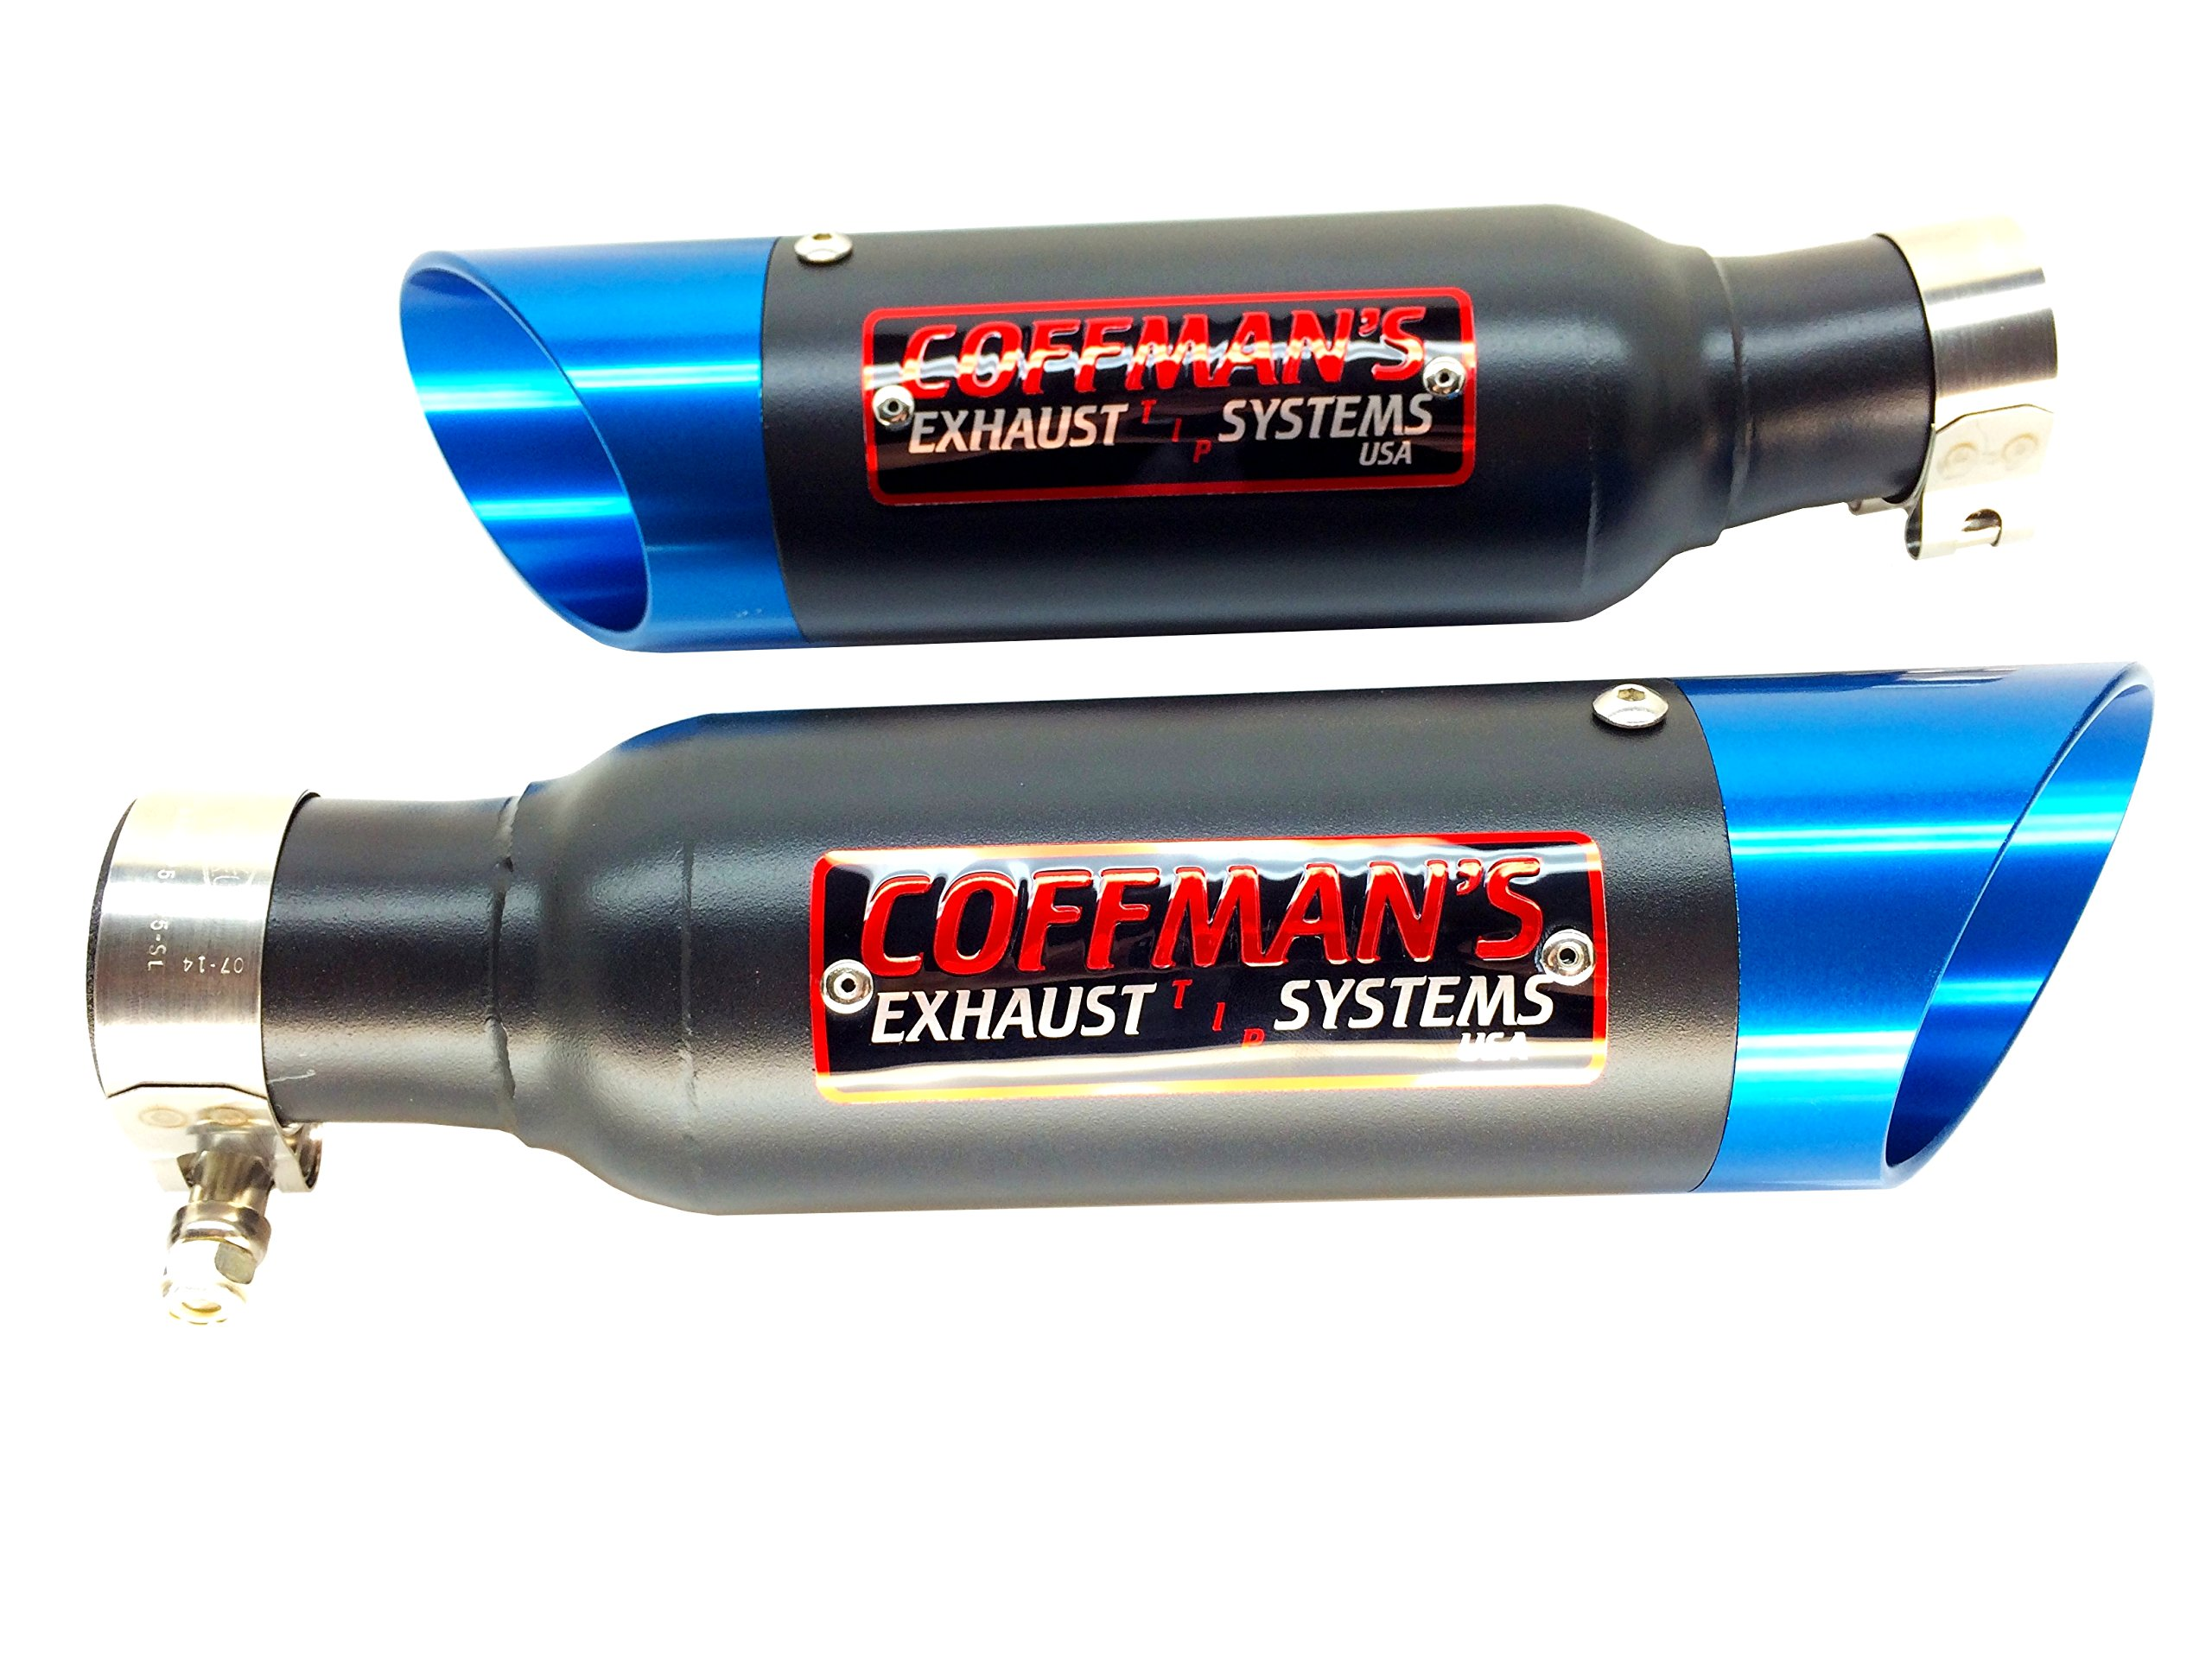 Coffman's Twin Shorty Exhausts for Suzuki Hayabusa GSXR1300 (1999-07) Sportbike with Blue Tips